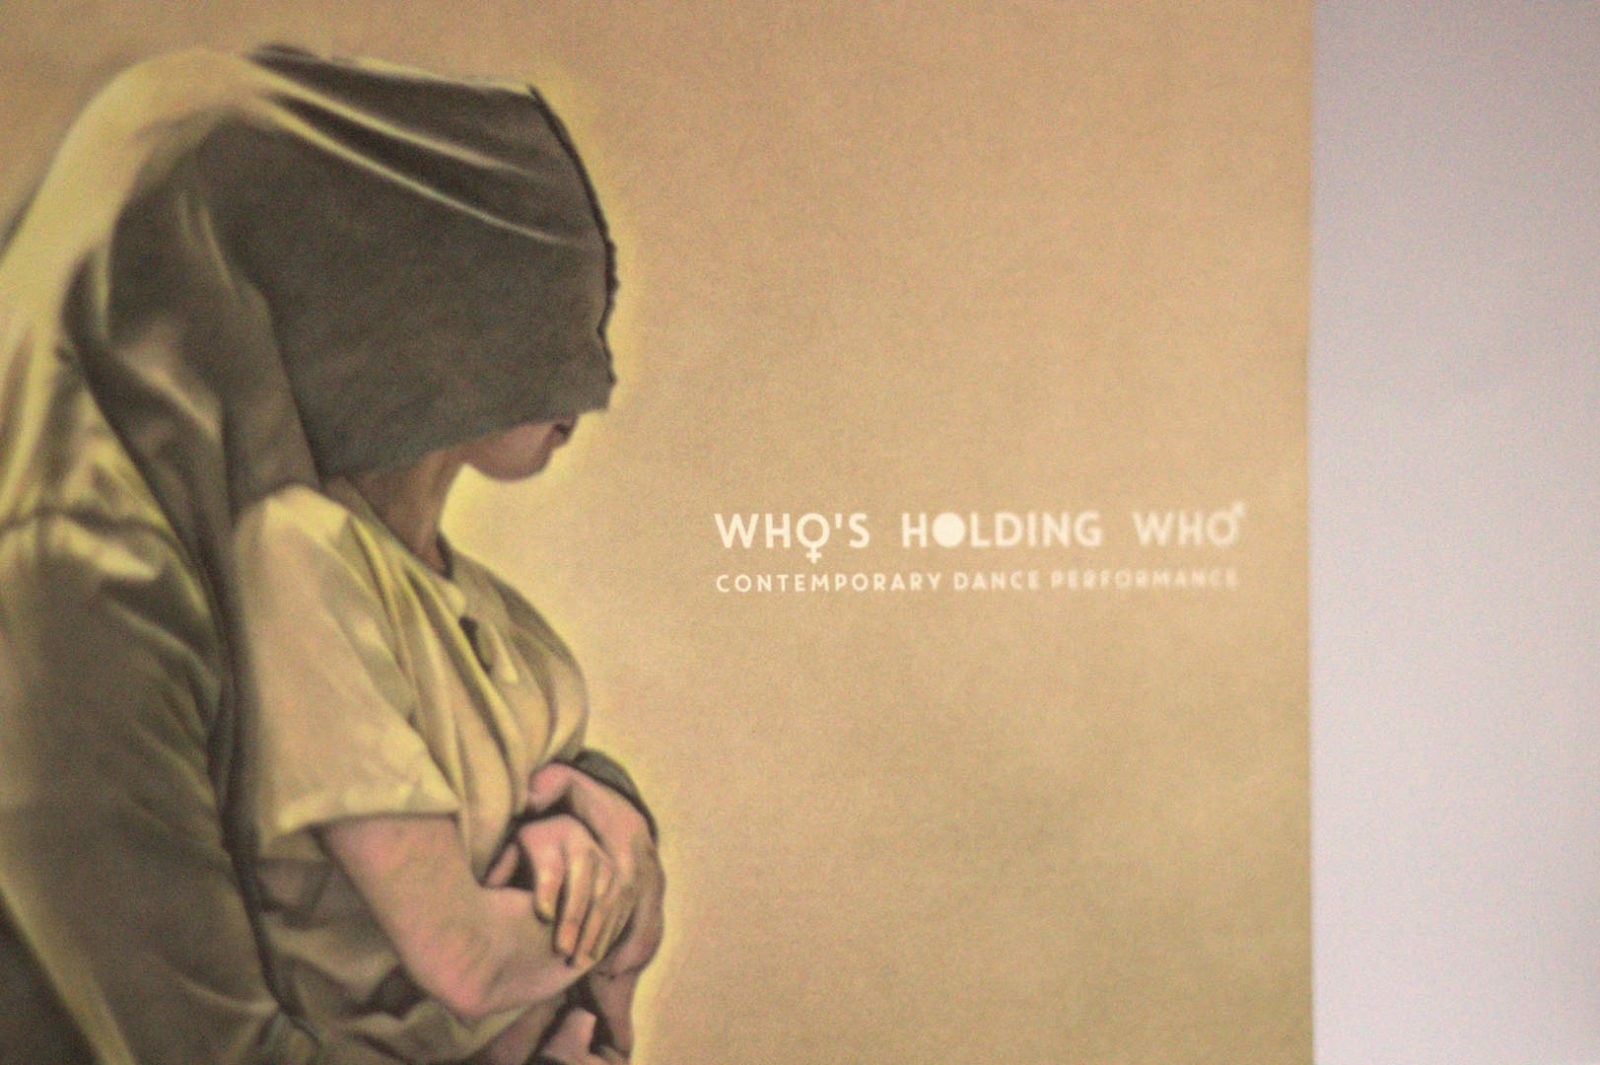 WHO'S HOLDING WHO - CONTEMPORARY DANCE PERFORMANCE - DETTAGLIO CARTA OFFSET PROGRAMMA DI SALA